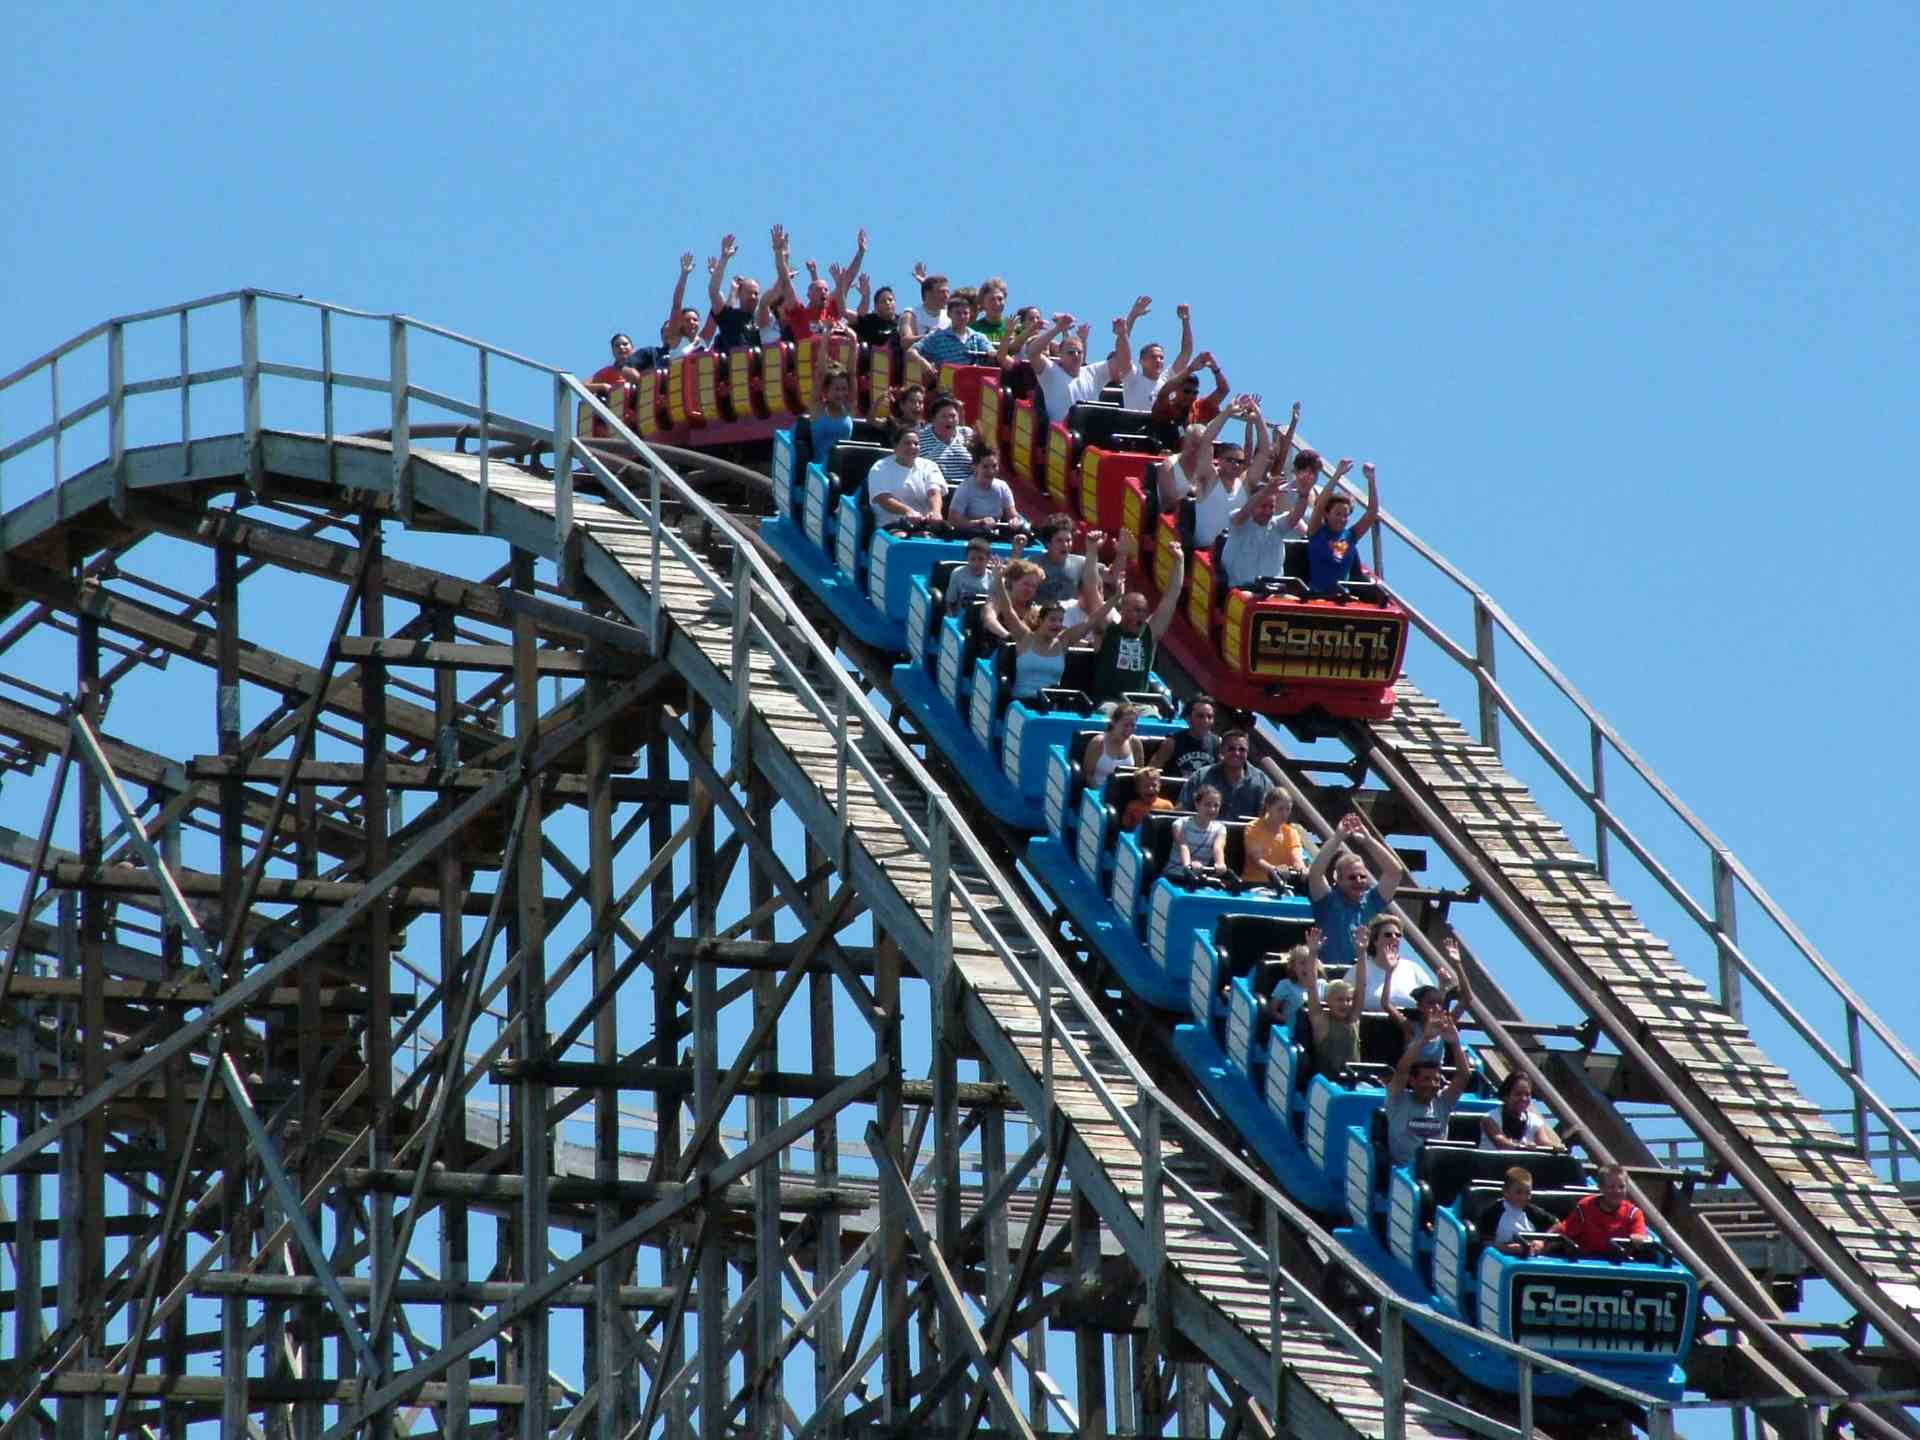 People riding the Gemini Roller Coaster at Cedar Point